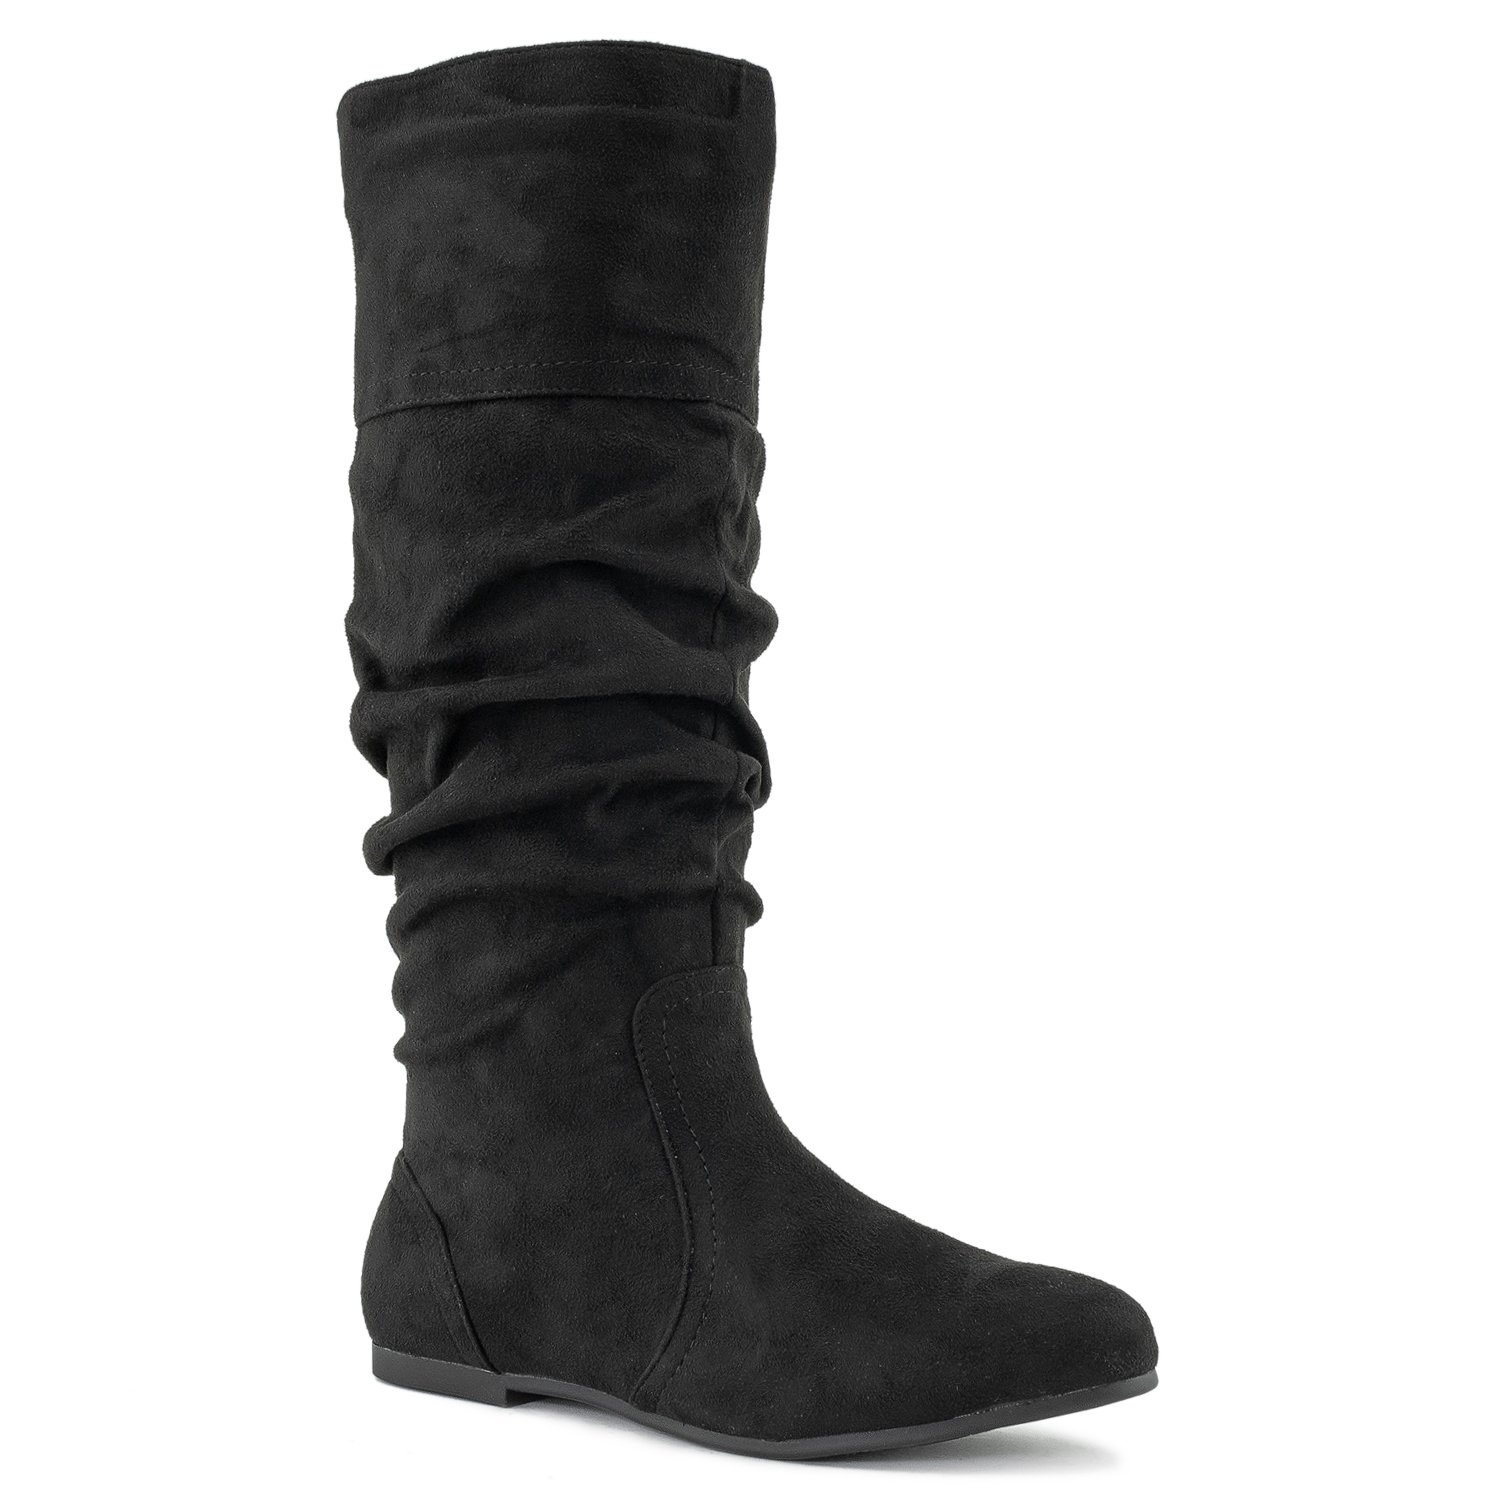 RF ROOM OF FASHION Touched-11 Boots (Black SU Size 6.5)